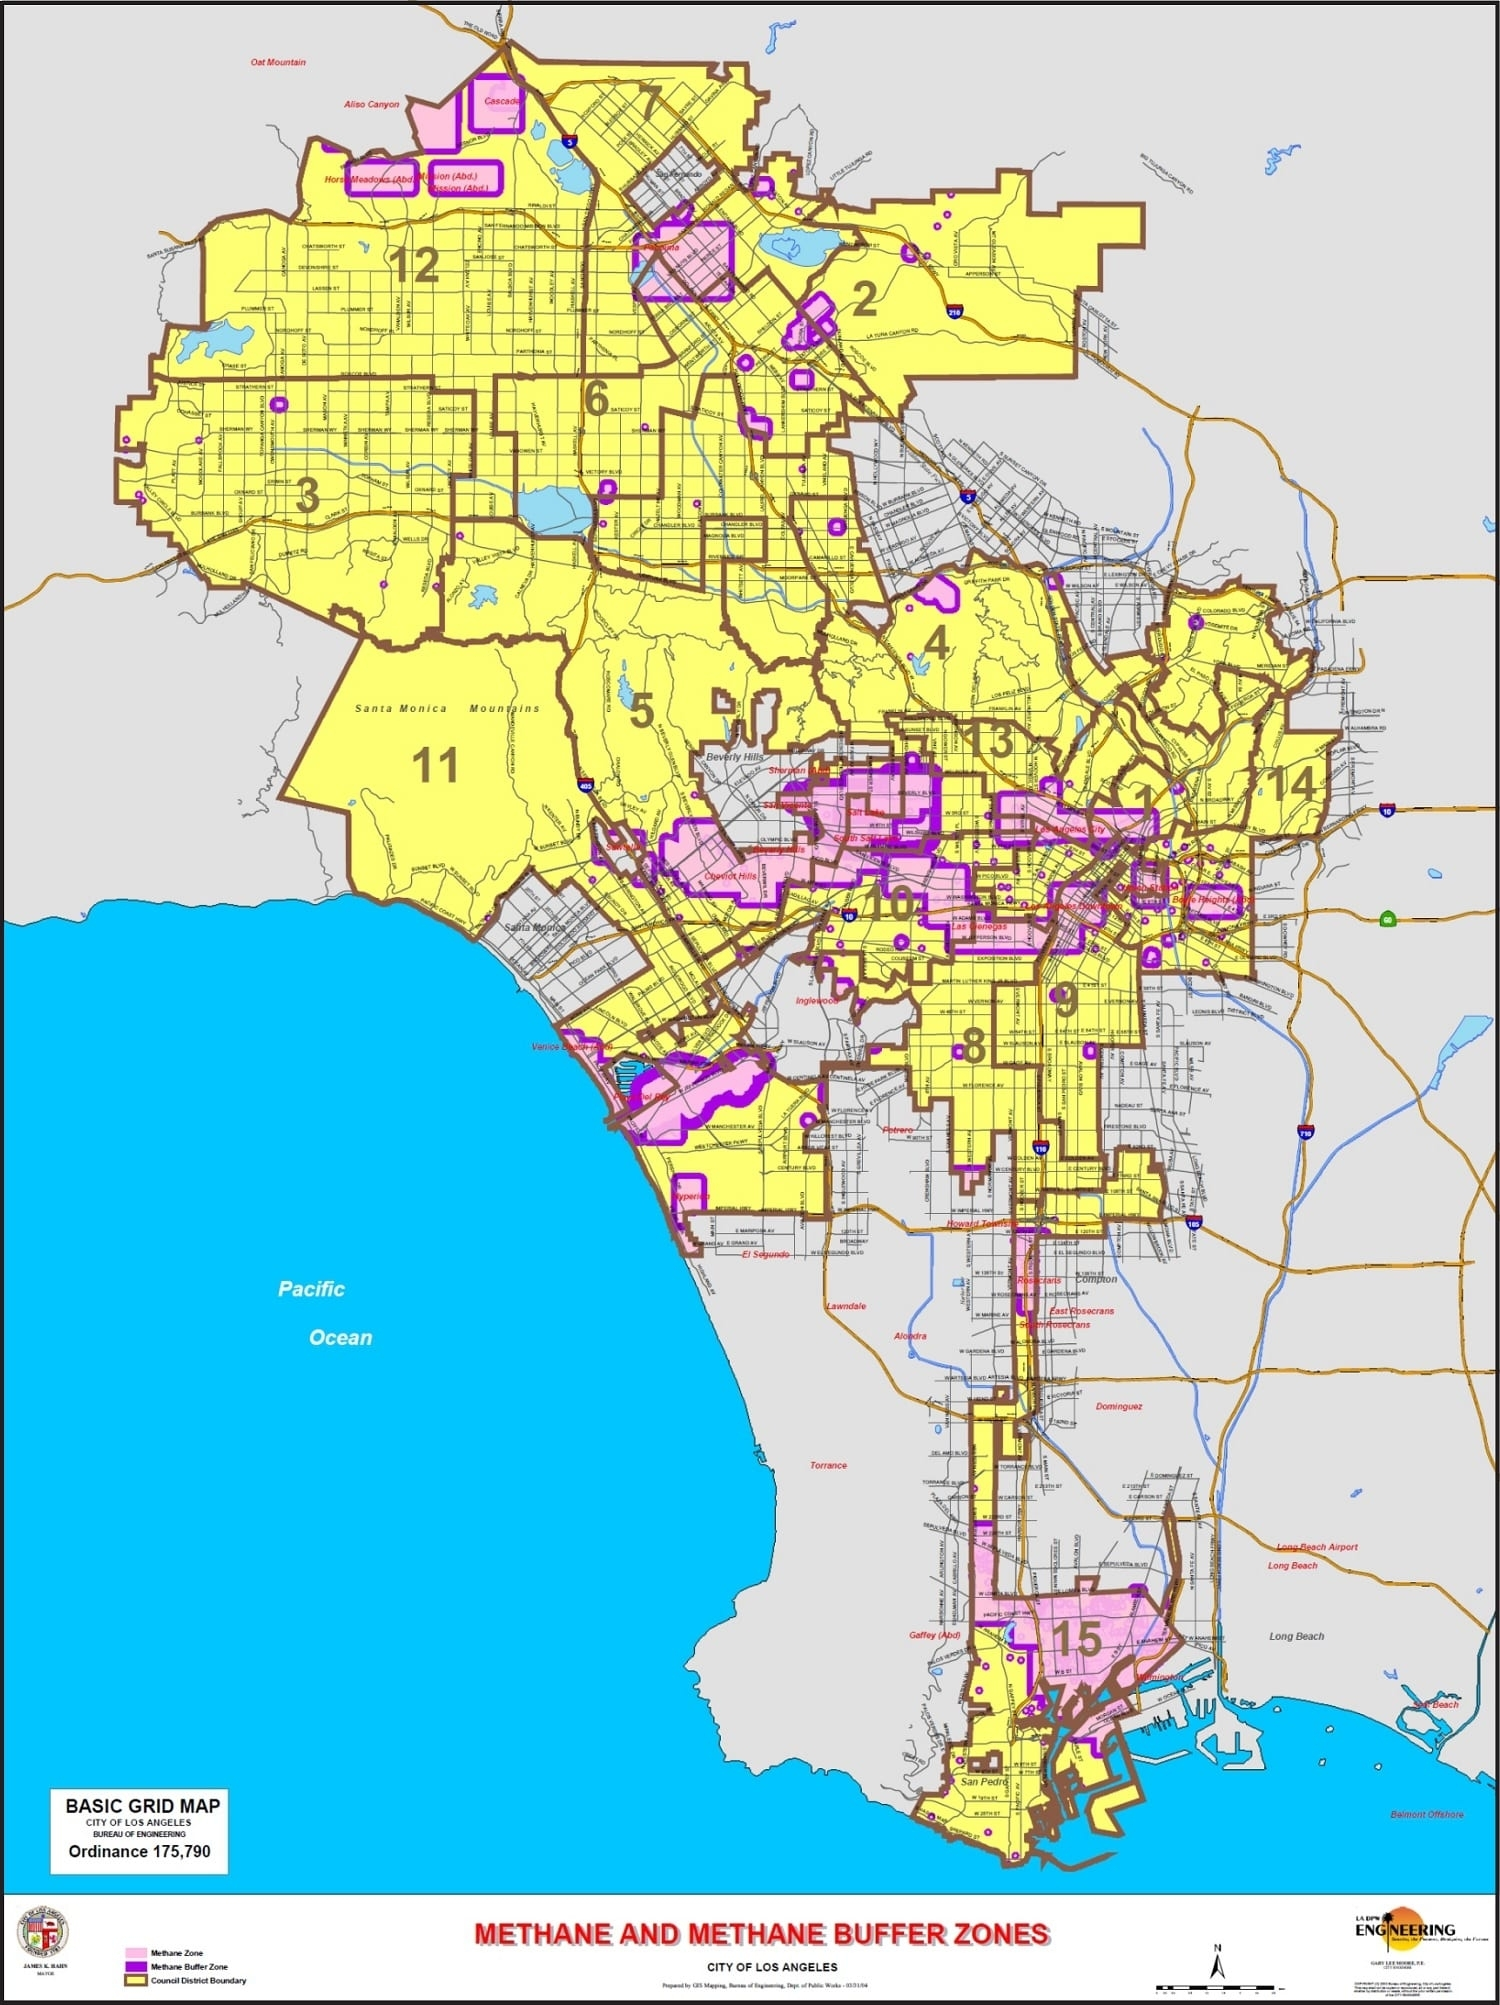 Los Angeles Methane Zones Map » Geo Forward in Los Angeles Methane Map